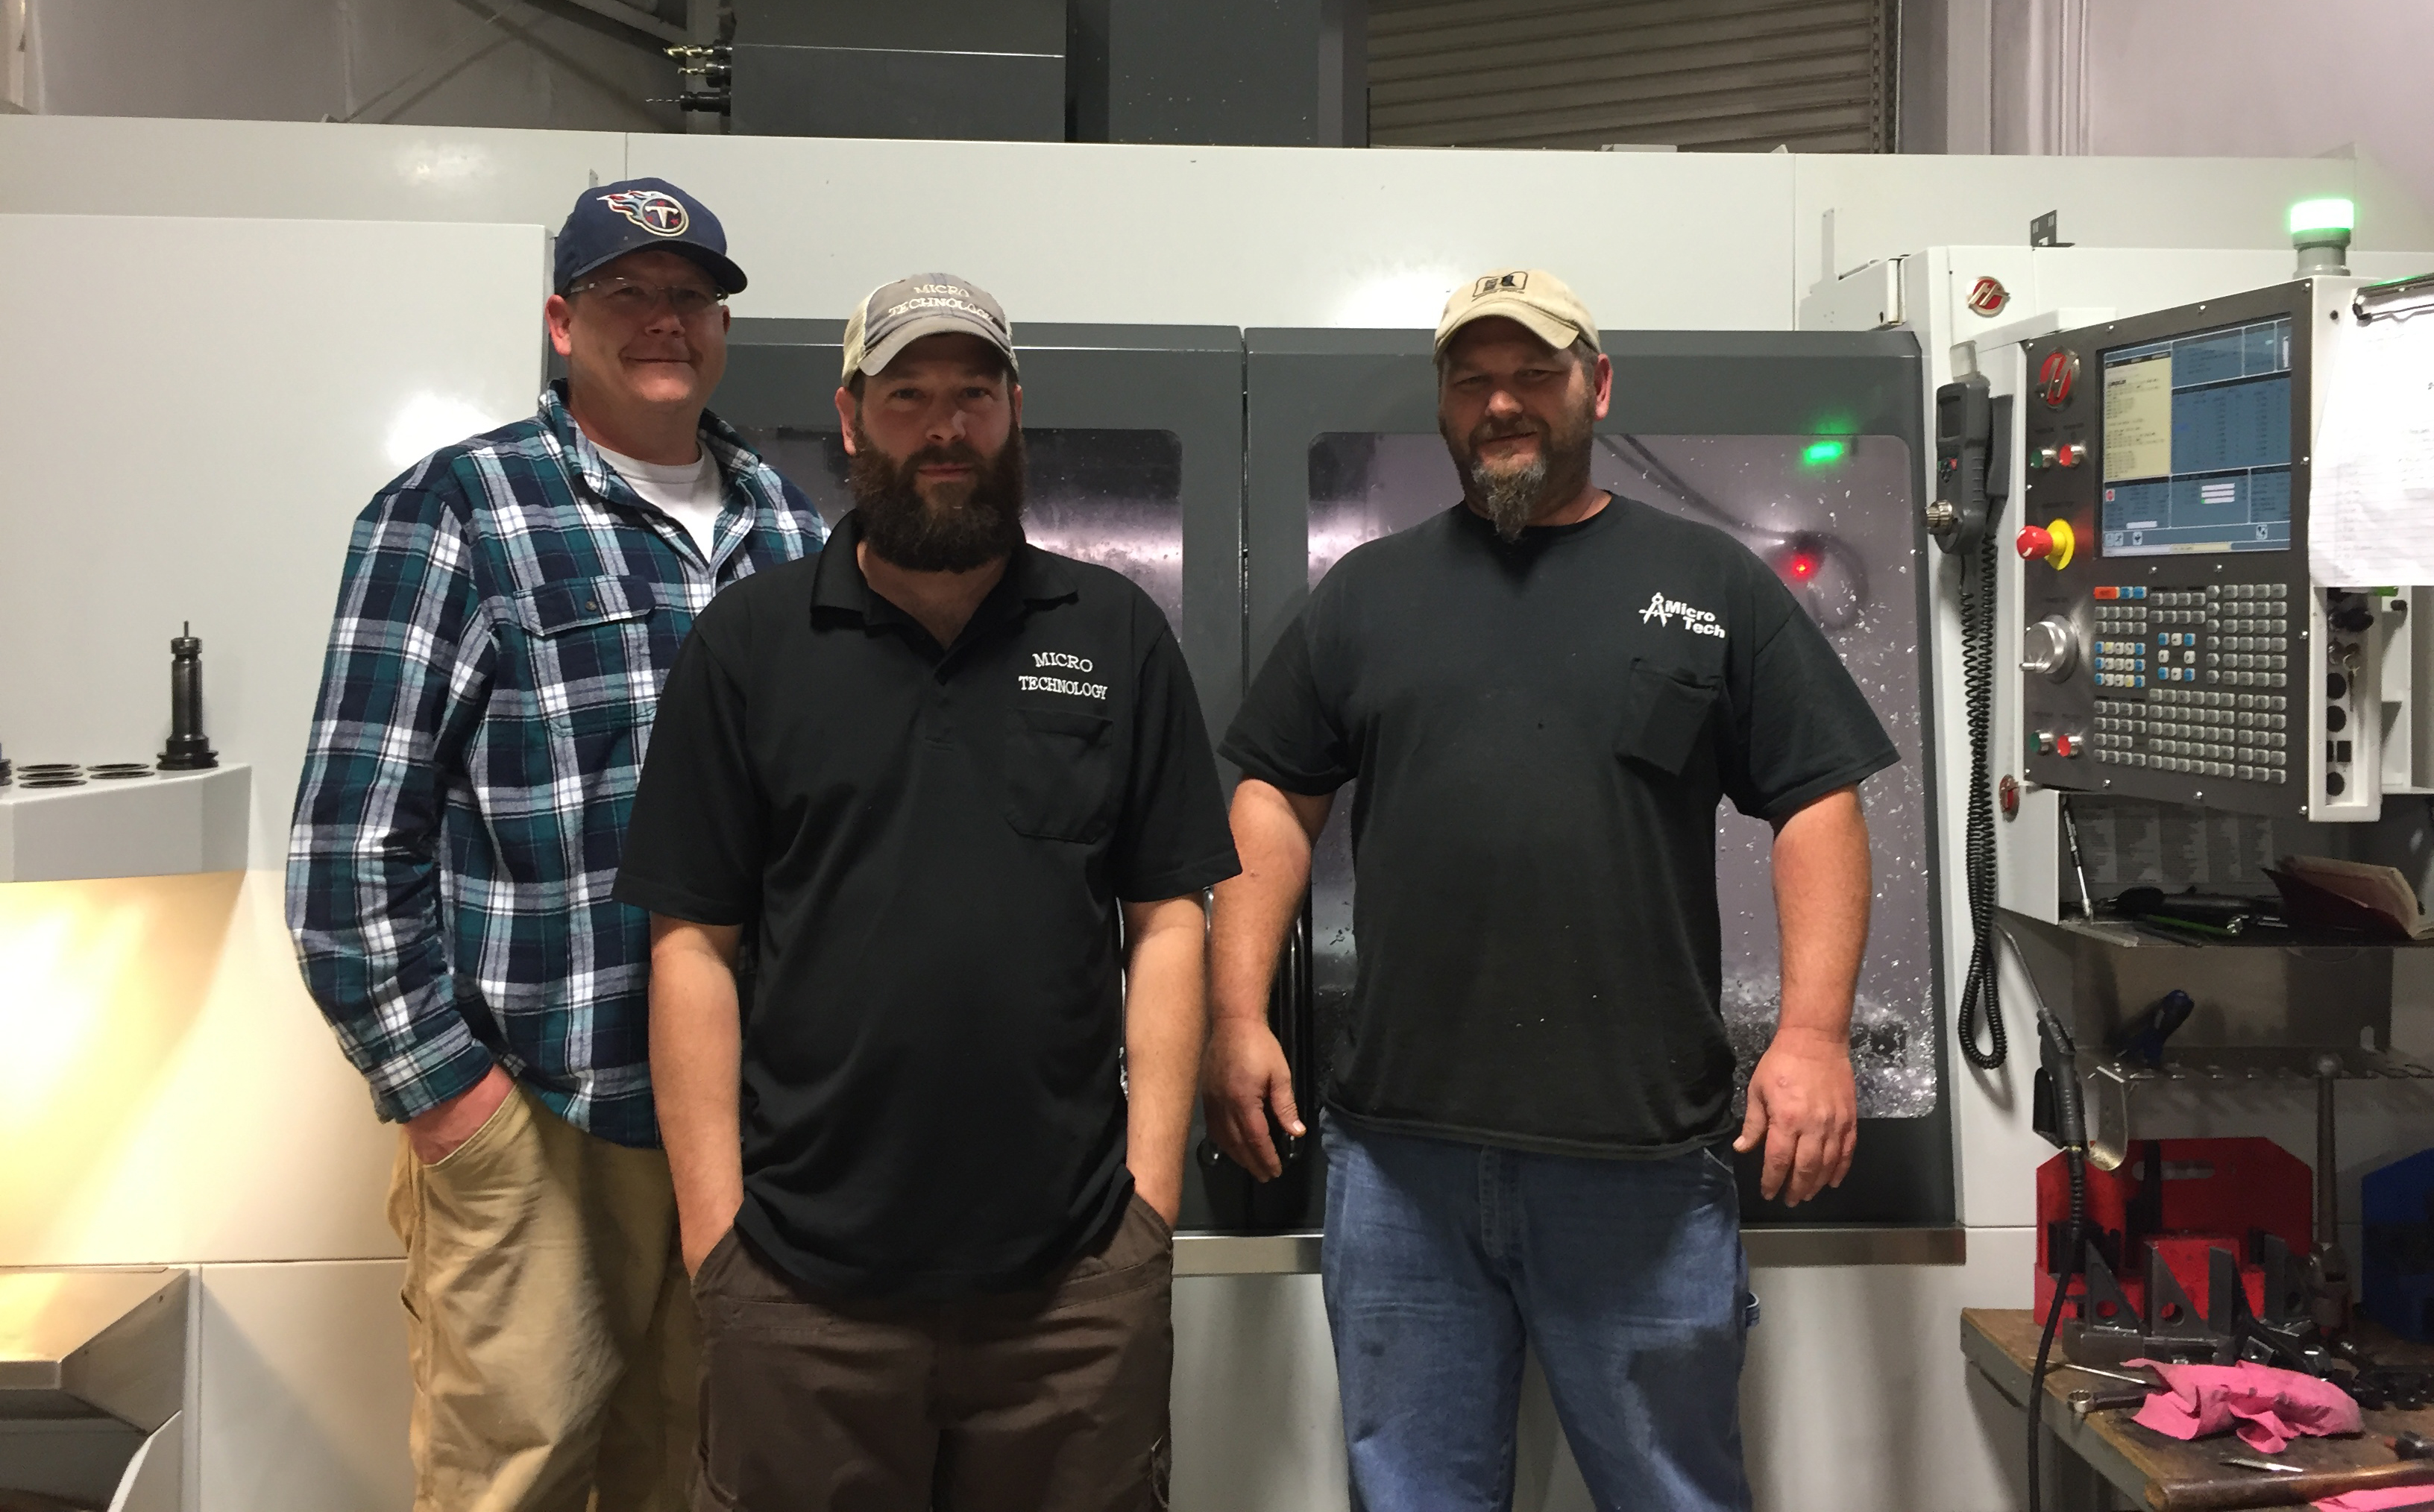 Pictured from left to right: Ted Pierce– Shop Foreman/ CNC Programmer; Charlie Wright, Jr. – General Manager; John Hargrove- Lead CNC Setup/Operator